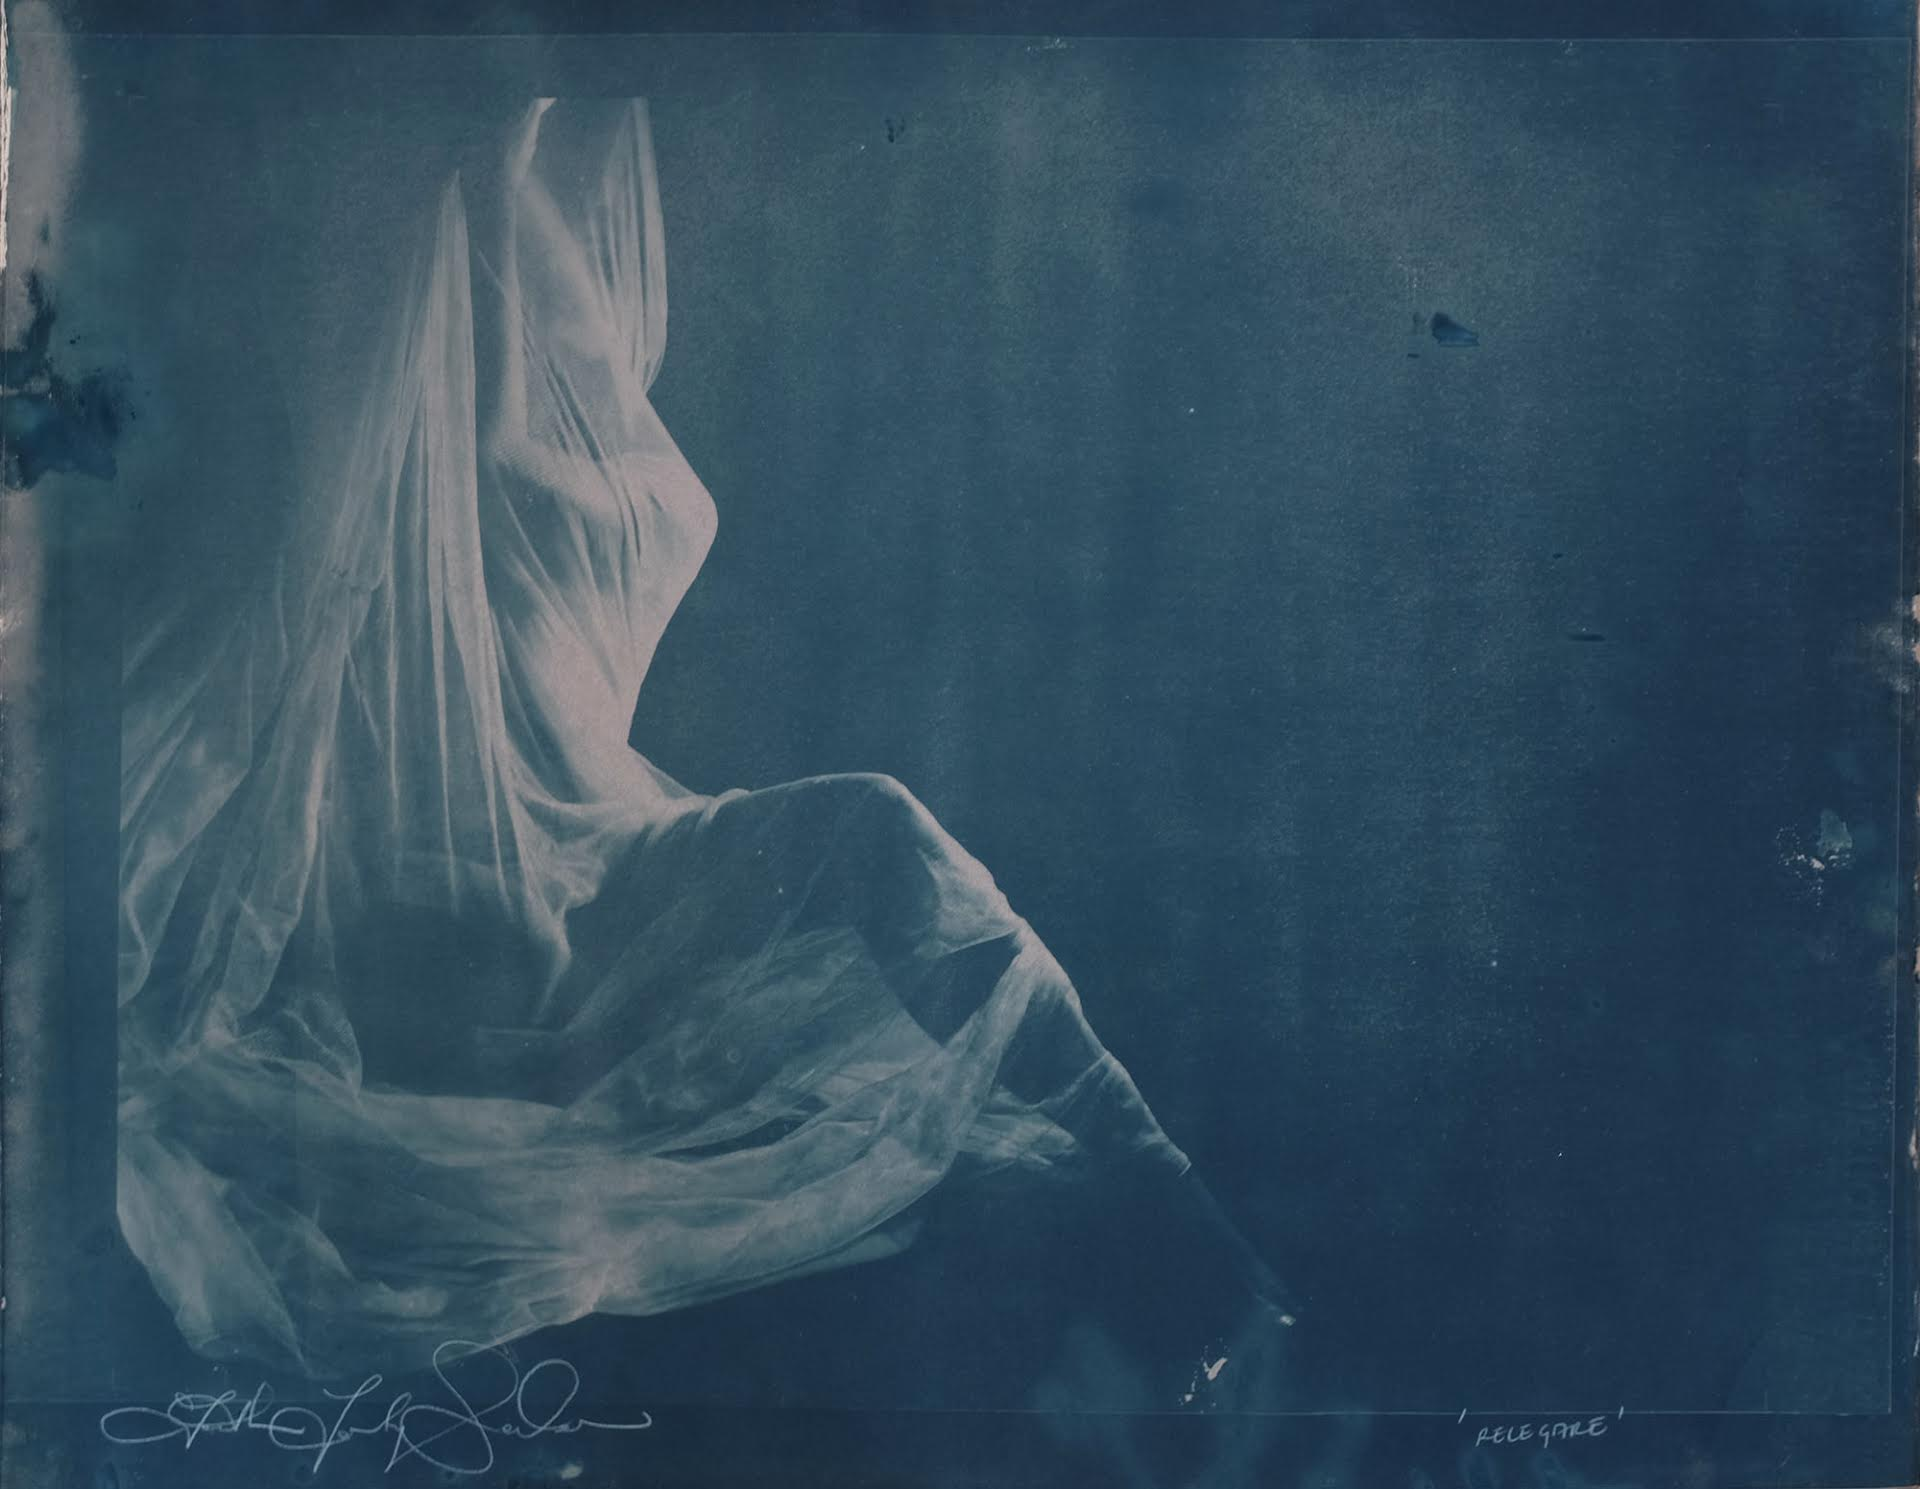 FAITH XLVII  Relegare , 2016  Cyanotype. Signed and titled on the lower margin. Edition of 5  26 x 34 in. (framed)